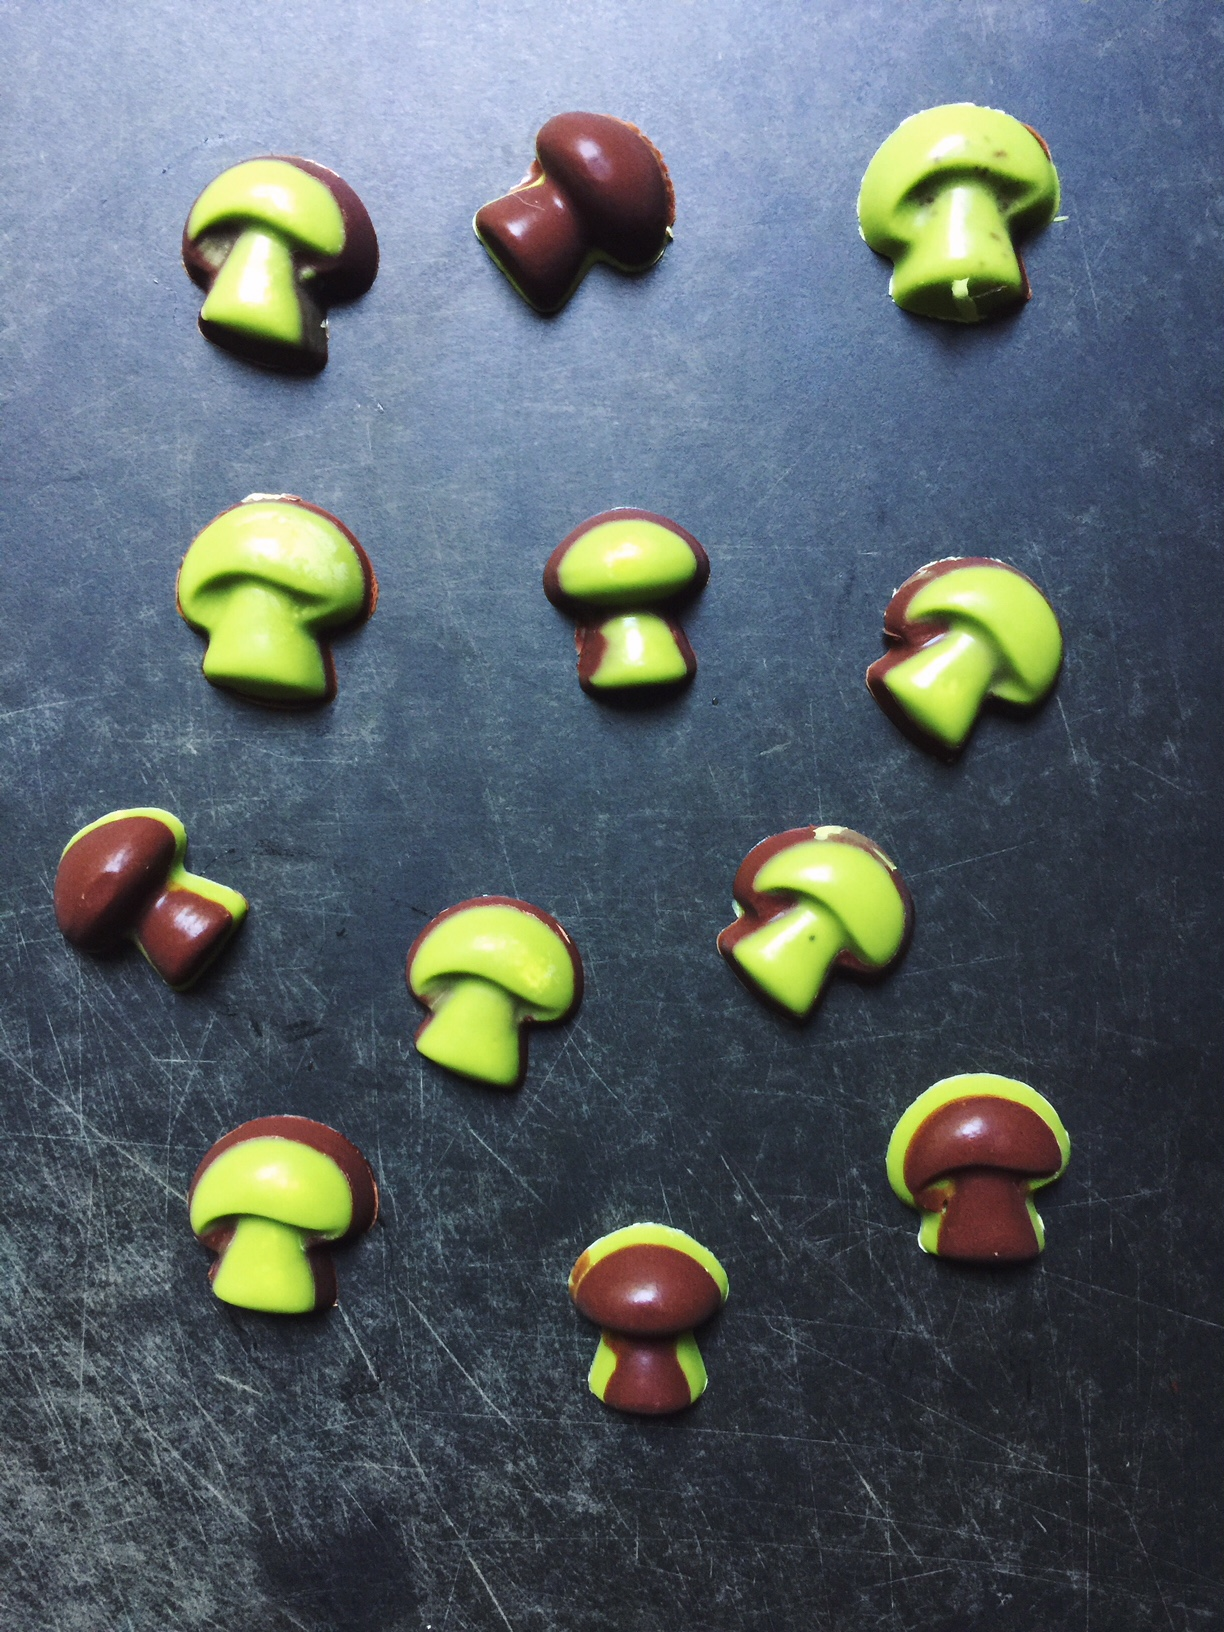 Mushroom chocolate moulds available  HERE .